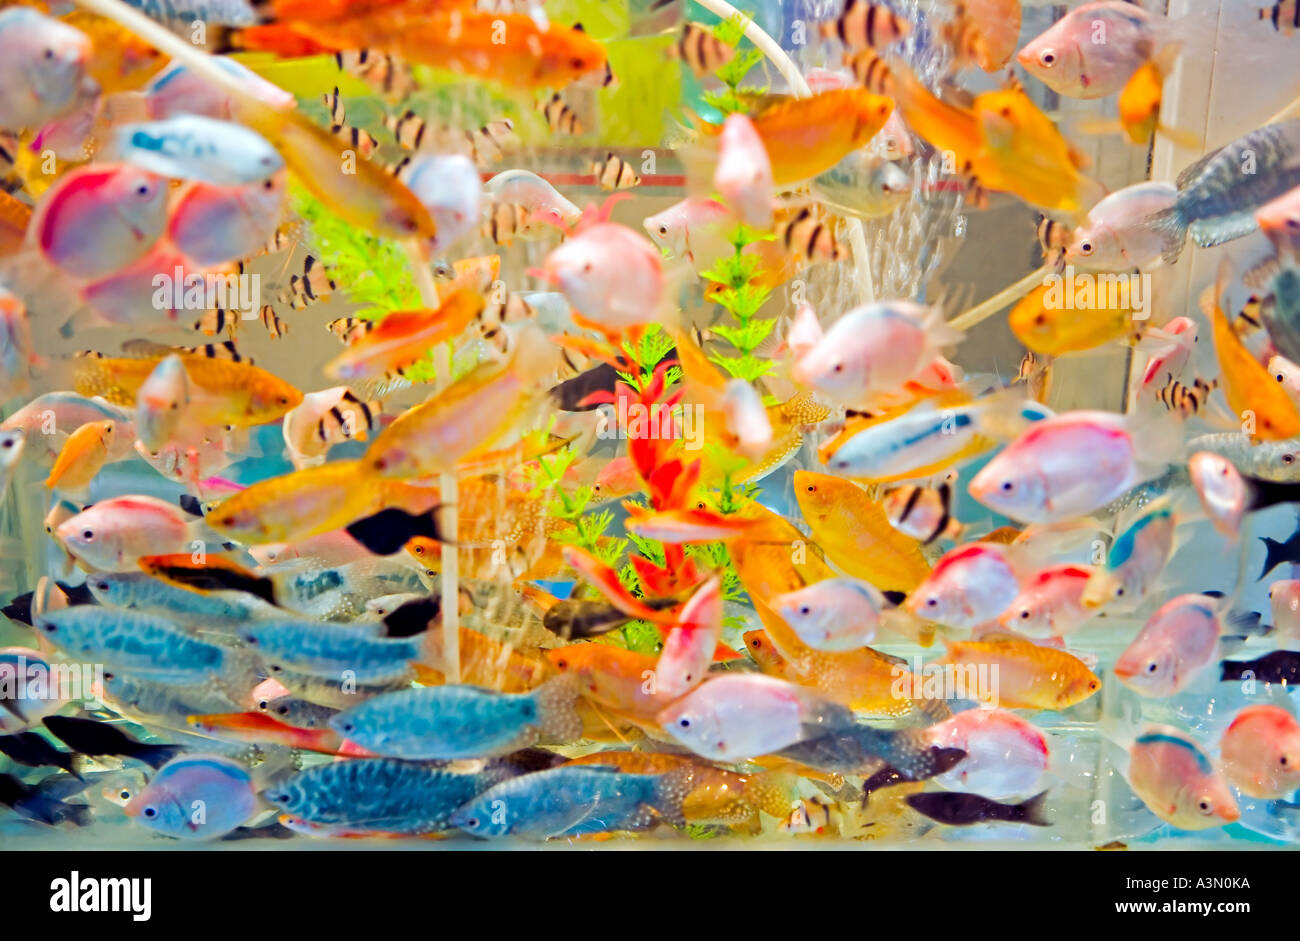 China hangzhou aquarium full of brightly colored tropical for Chinese fish market near me